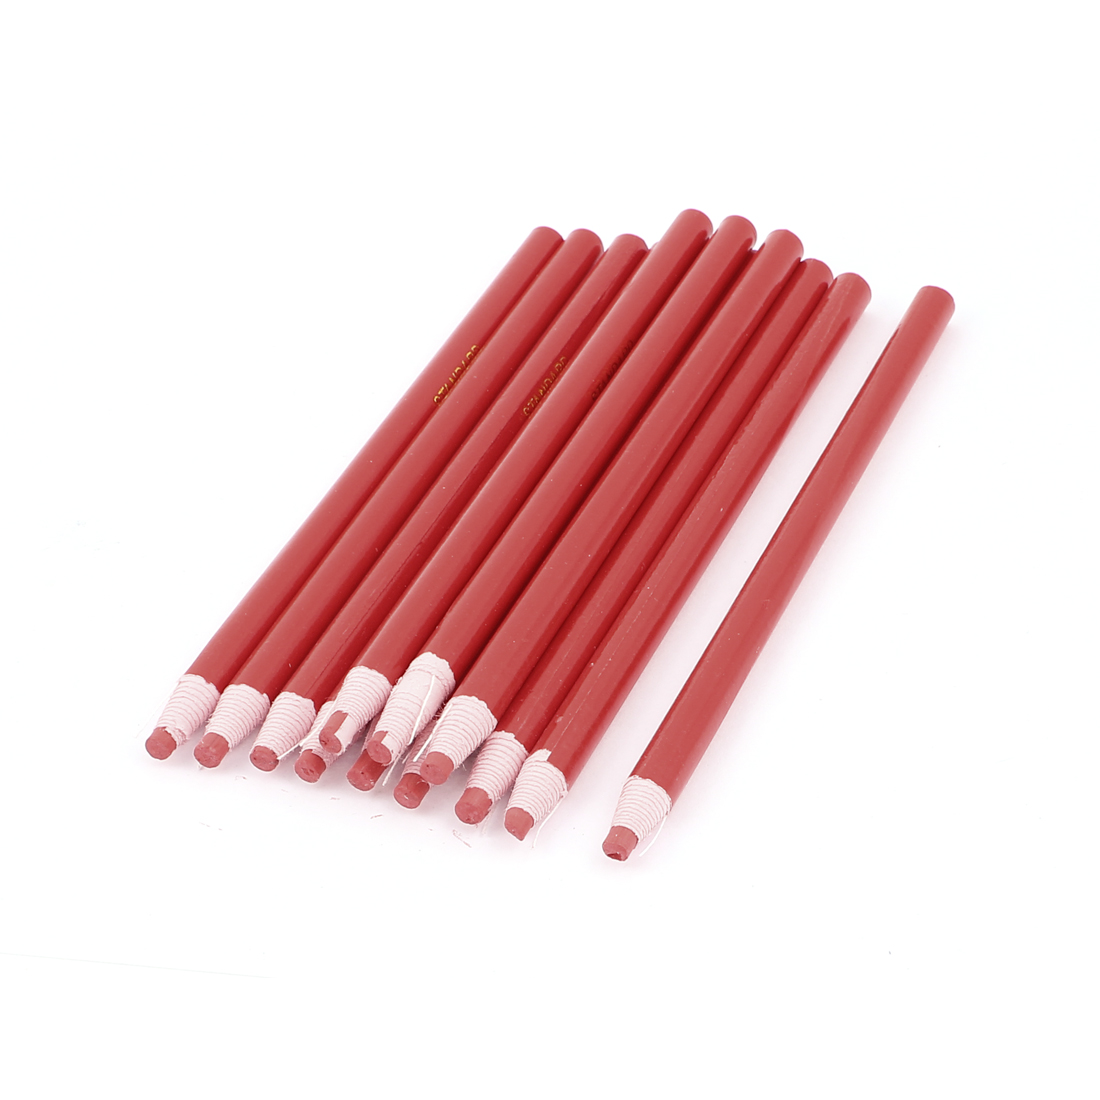 12pcs Red Paper Coated Craft Drawing Art Painting Oil Pastel Crayon